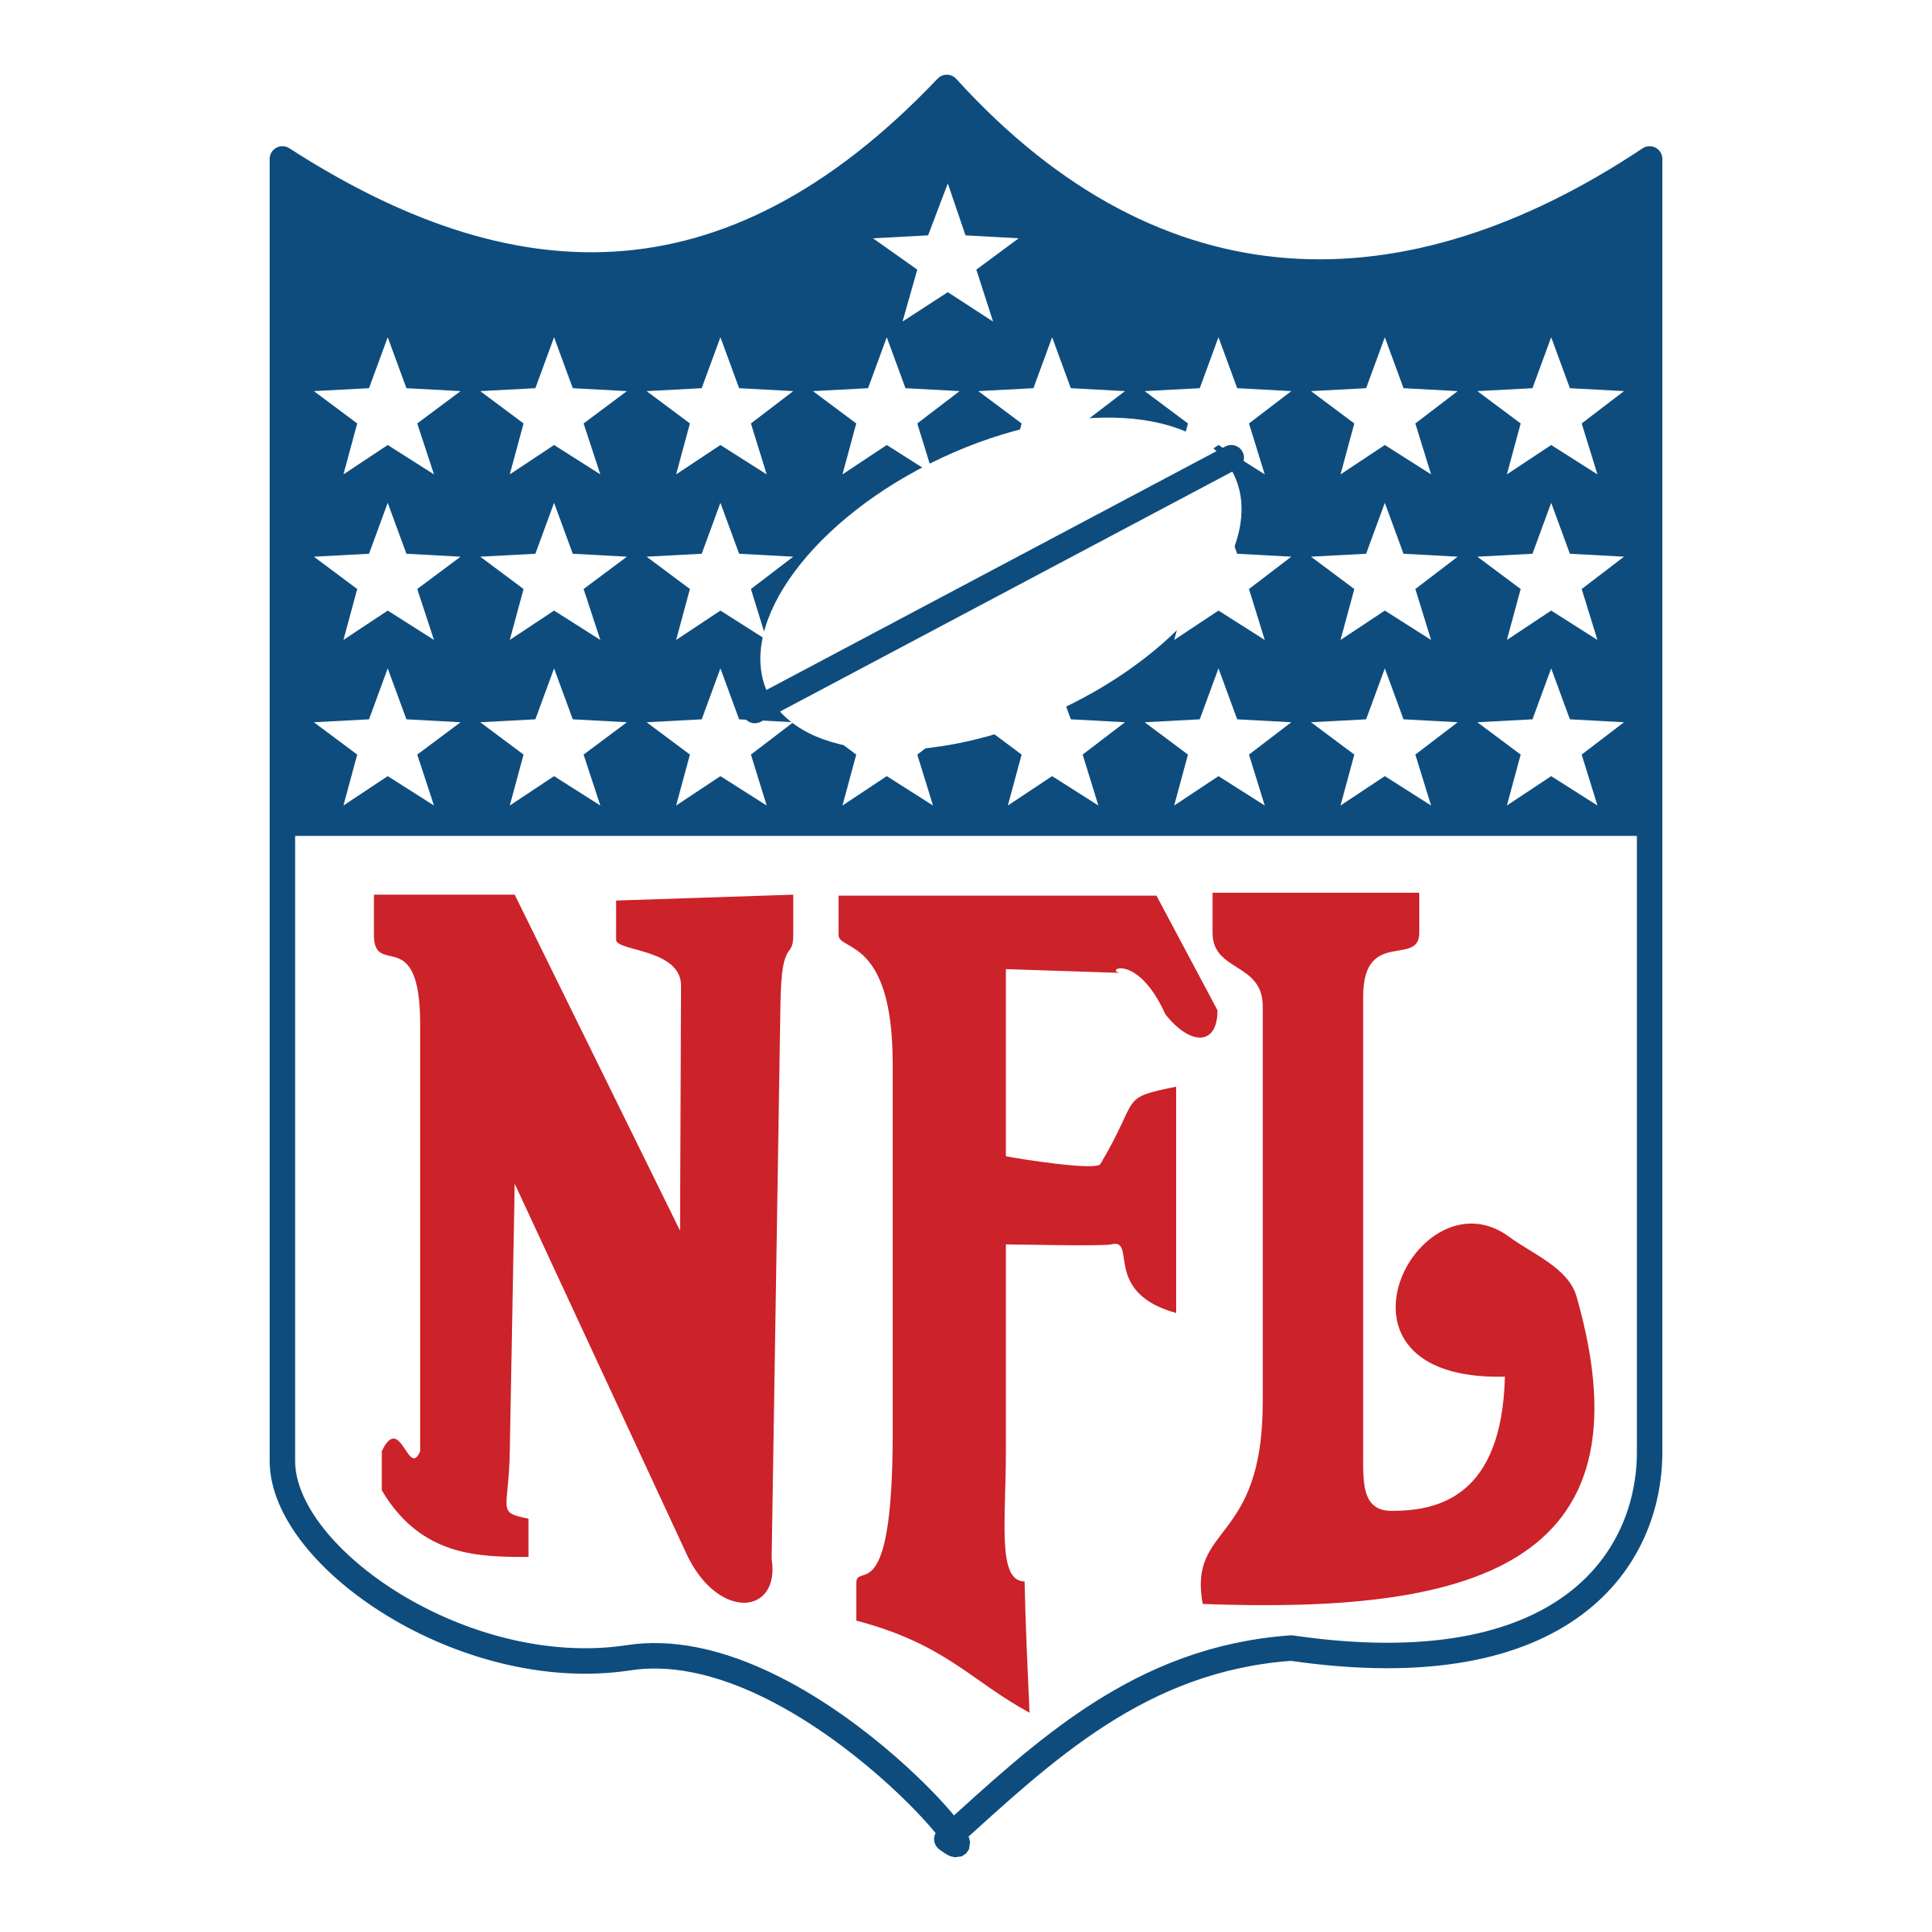 NFL Logo PNG Transparent & SVG Vector.